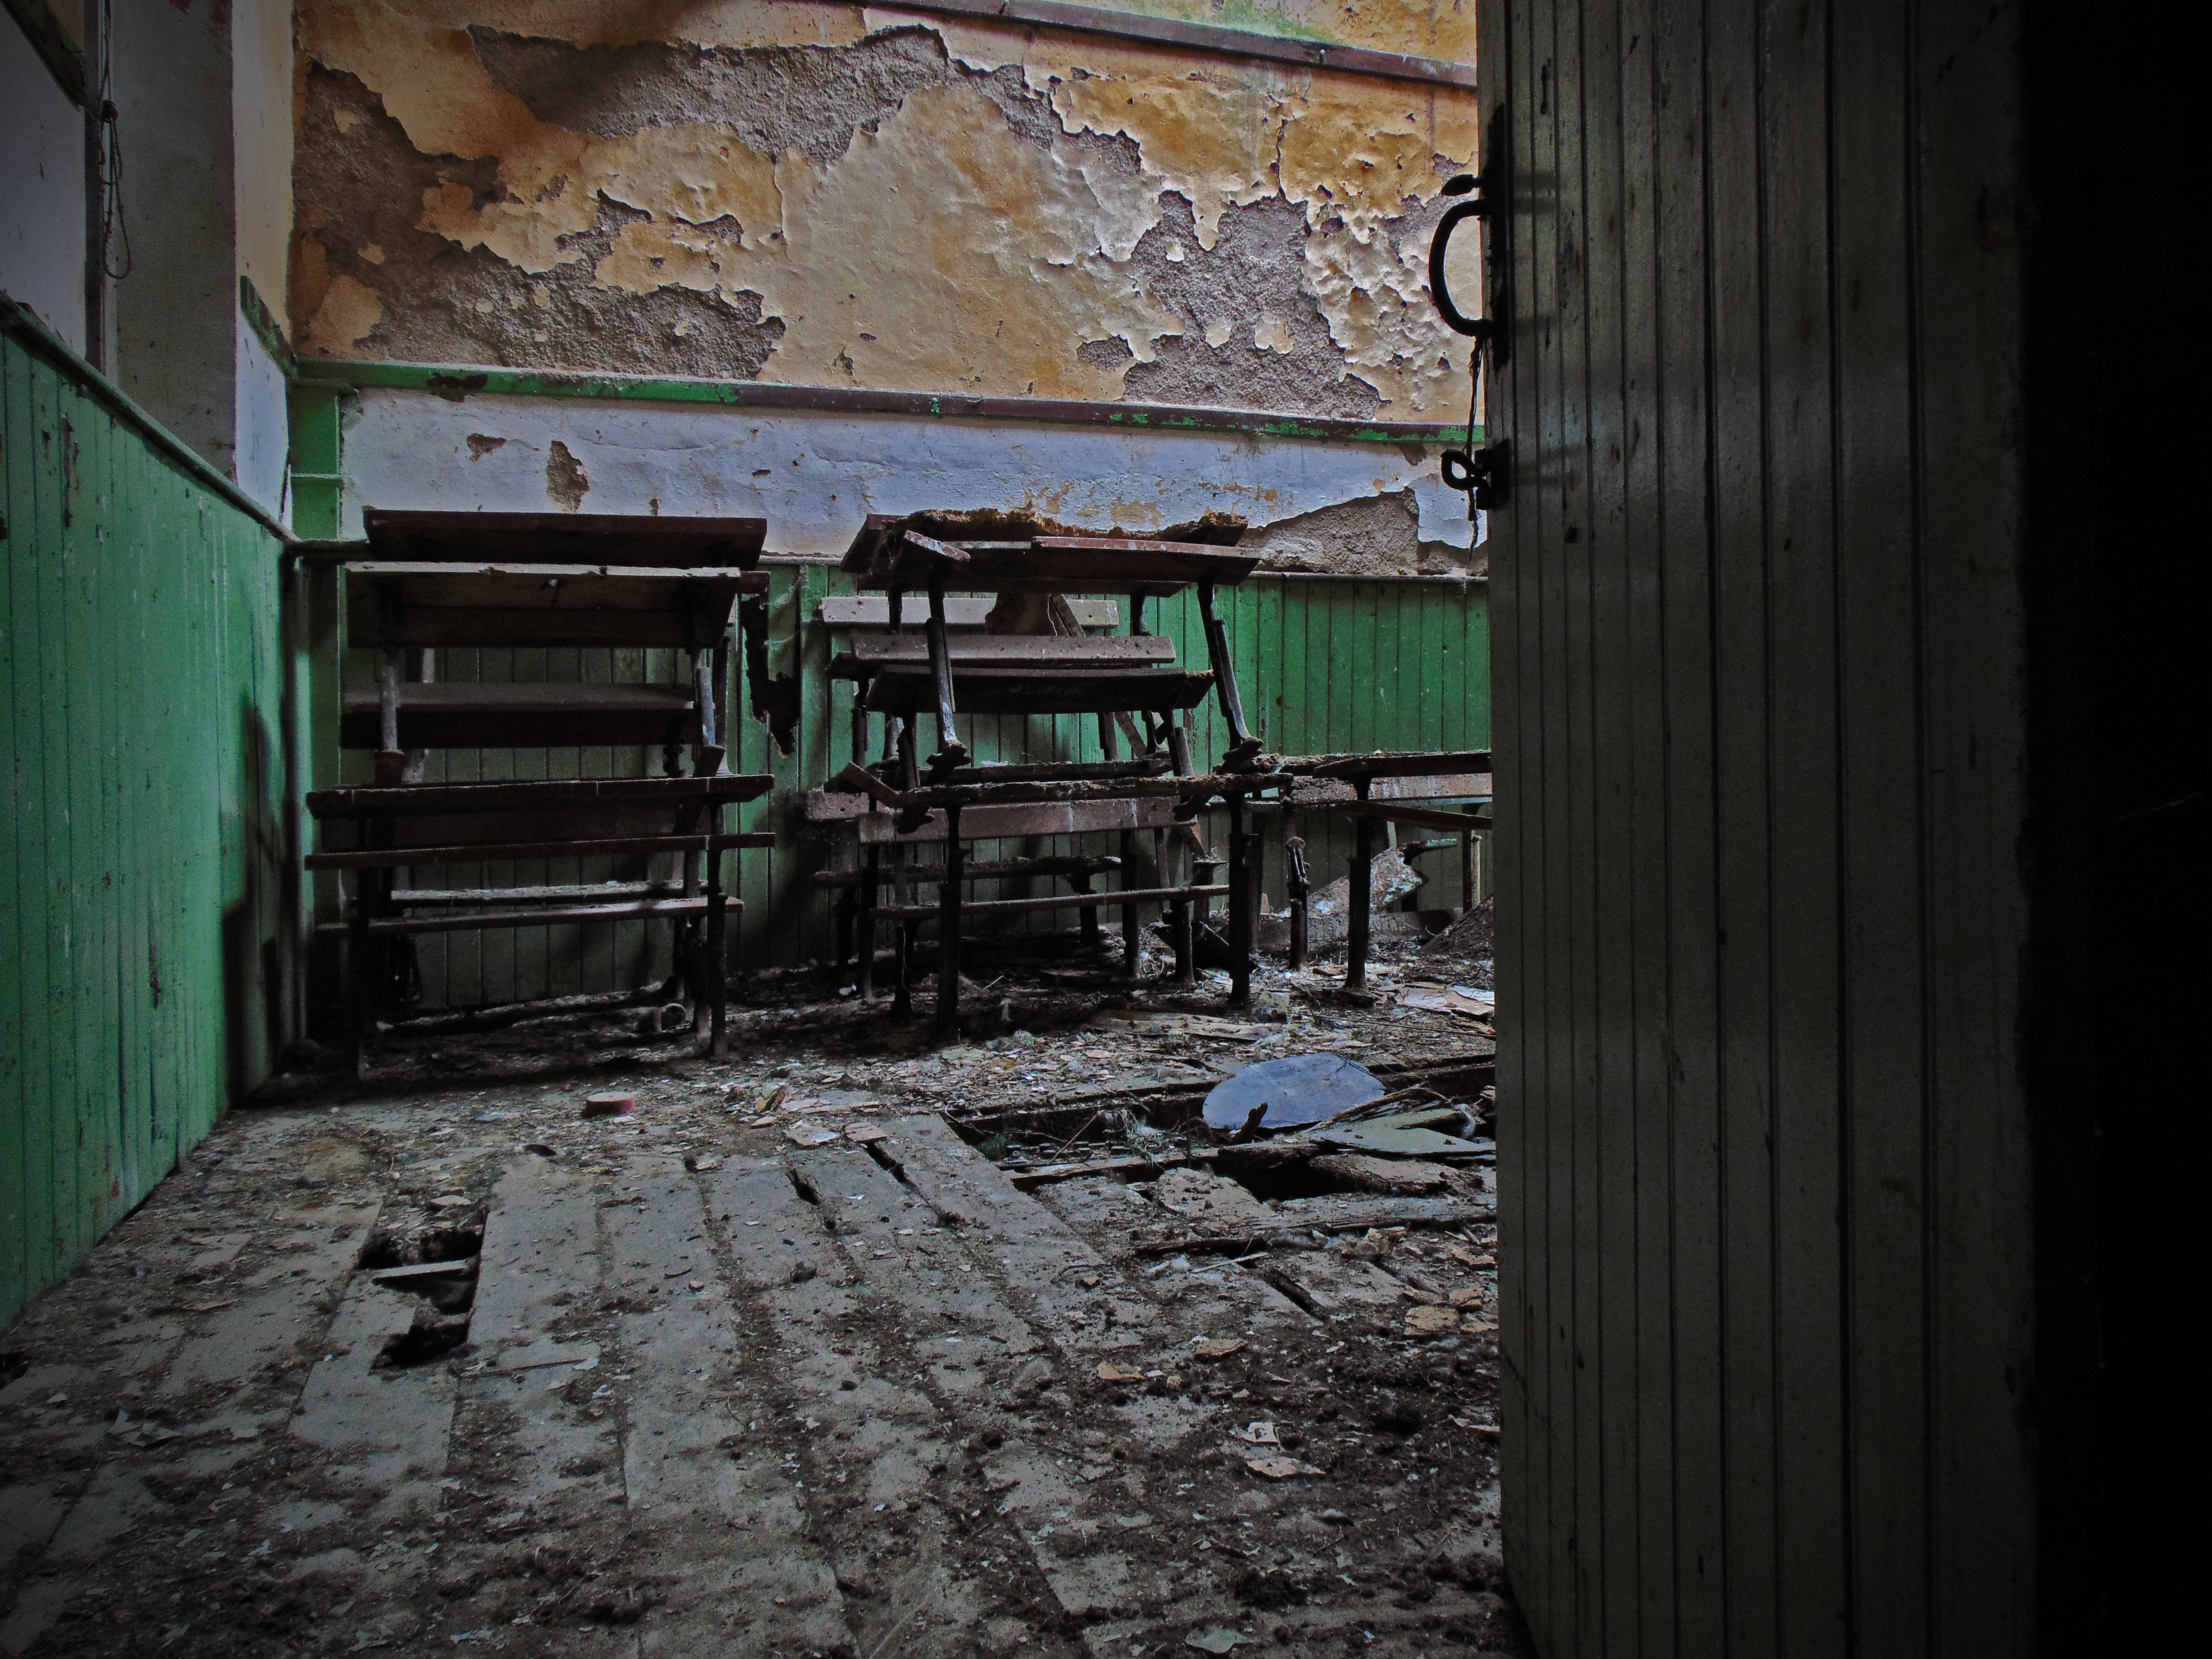 Furniture piled inside the smaller of the two classrooms at Leitir National School